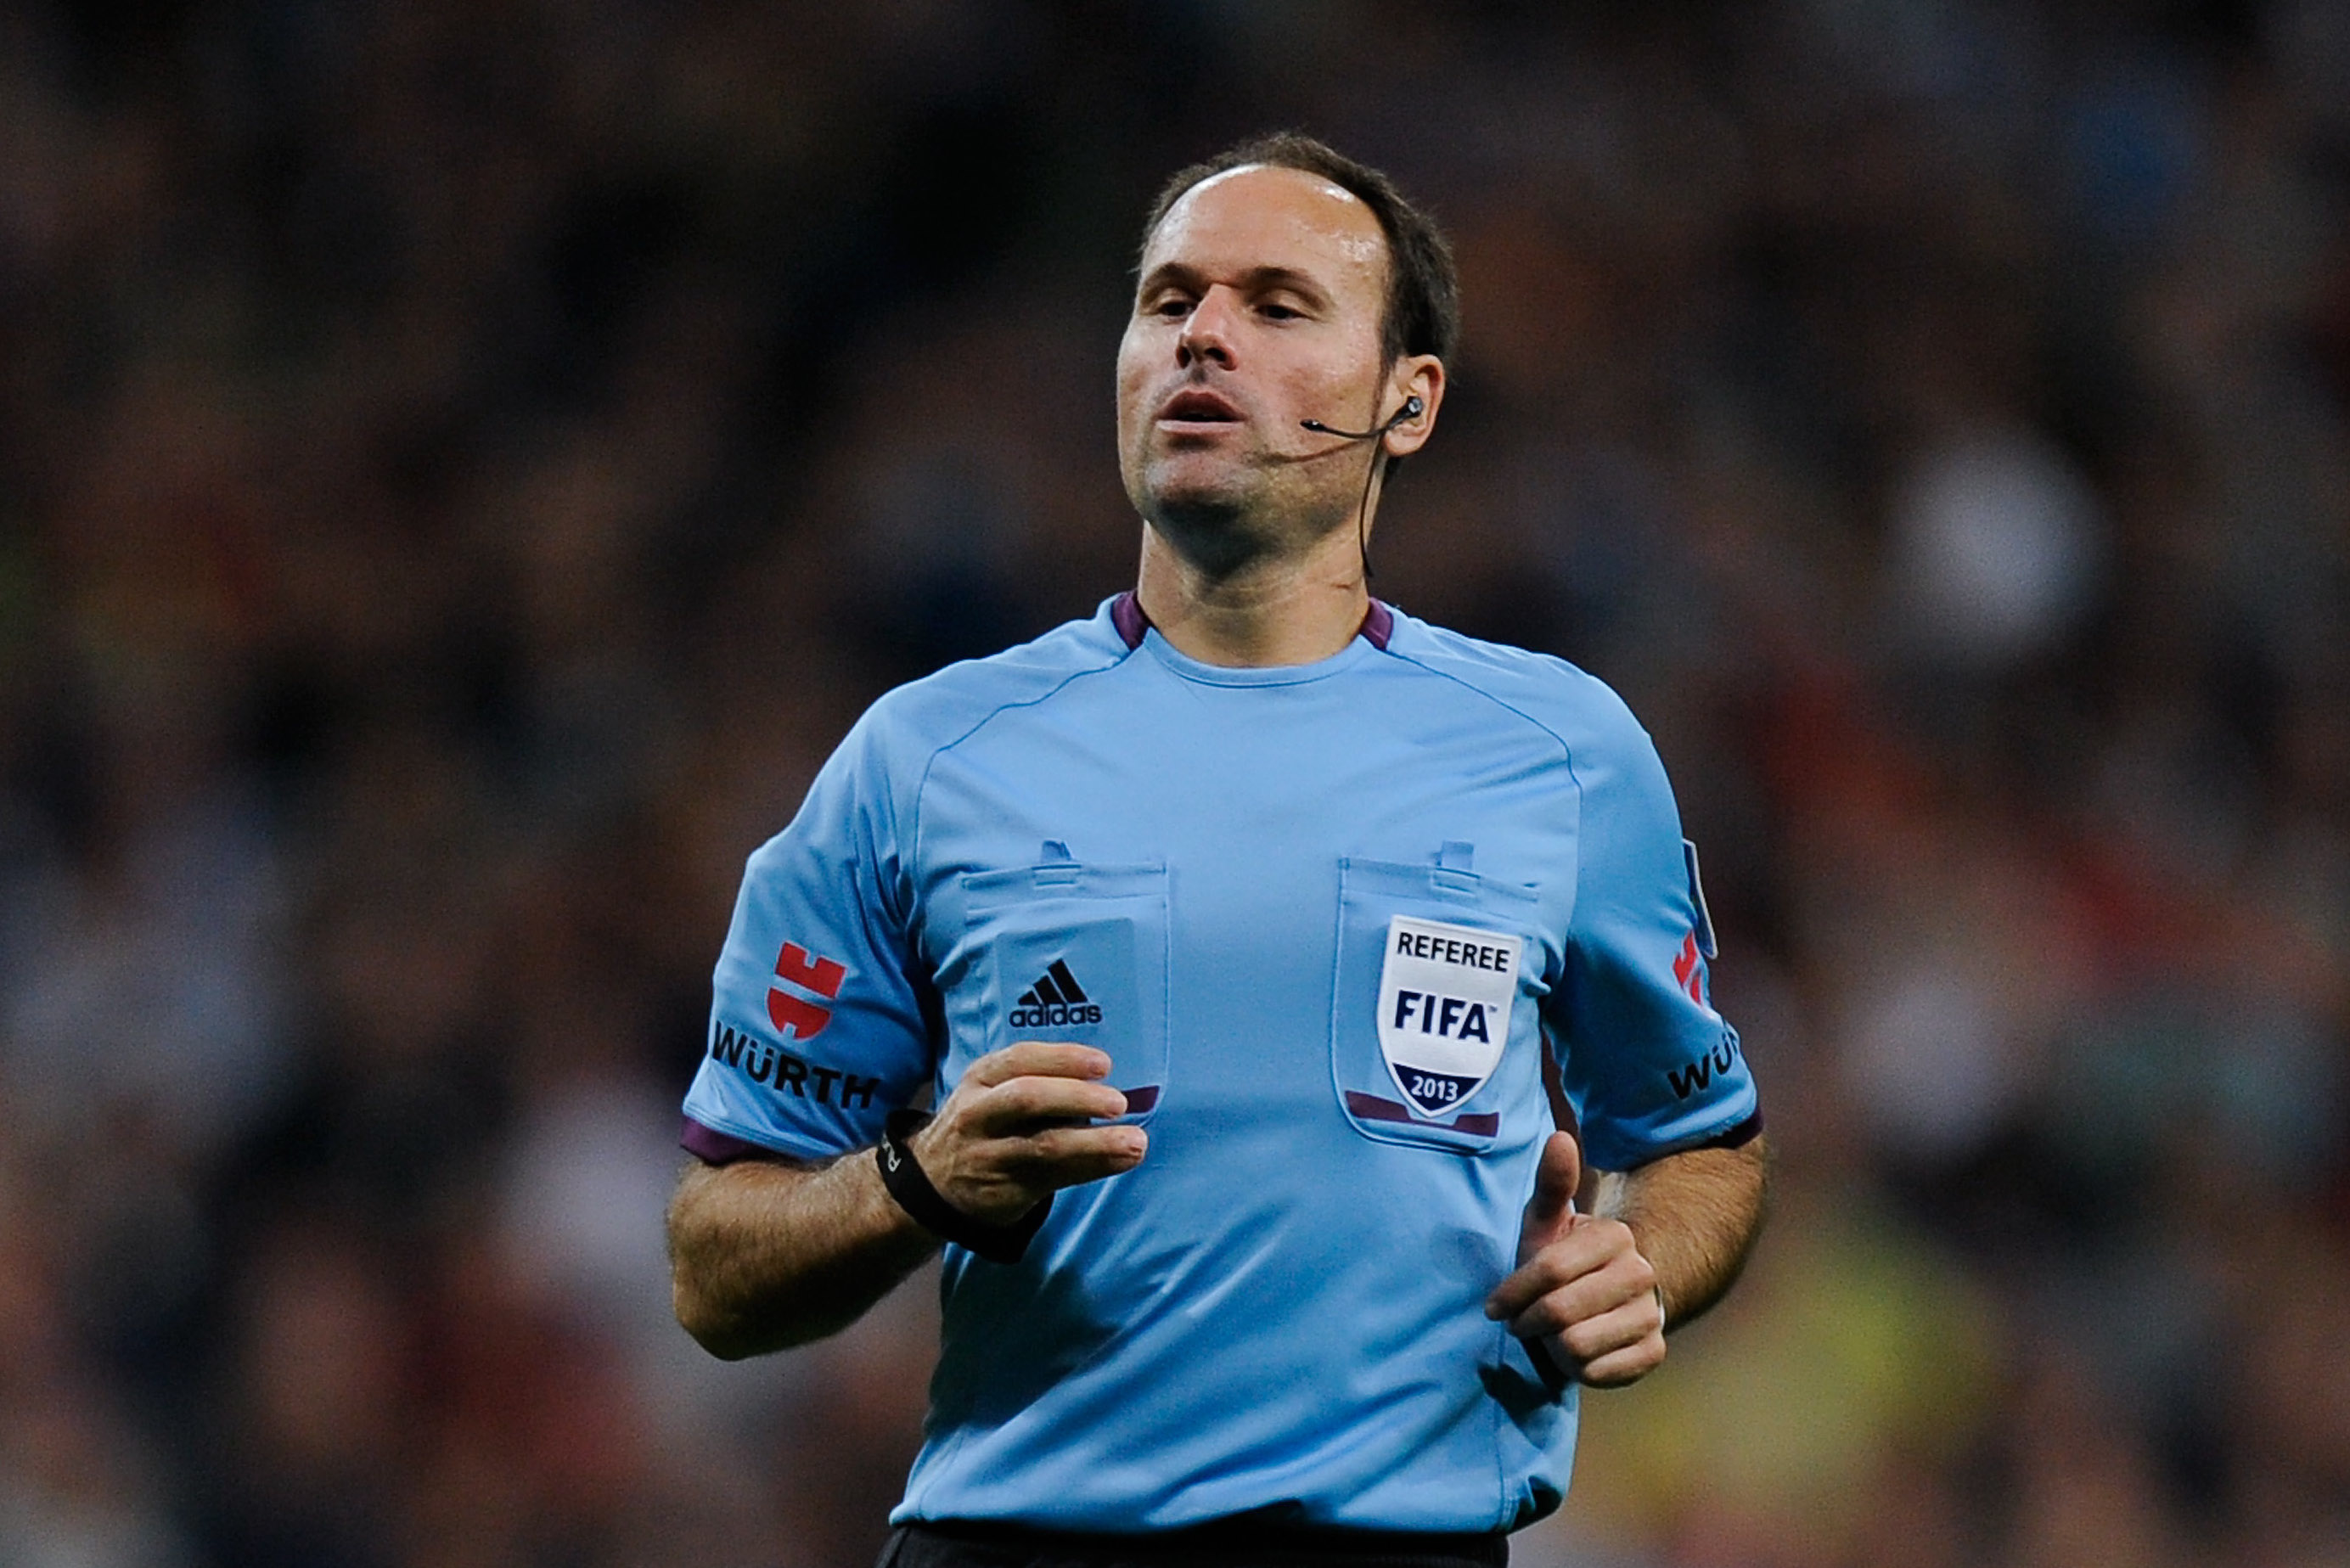 Mateu Lahoz - Referee - Liga BBVA - Spain